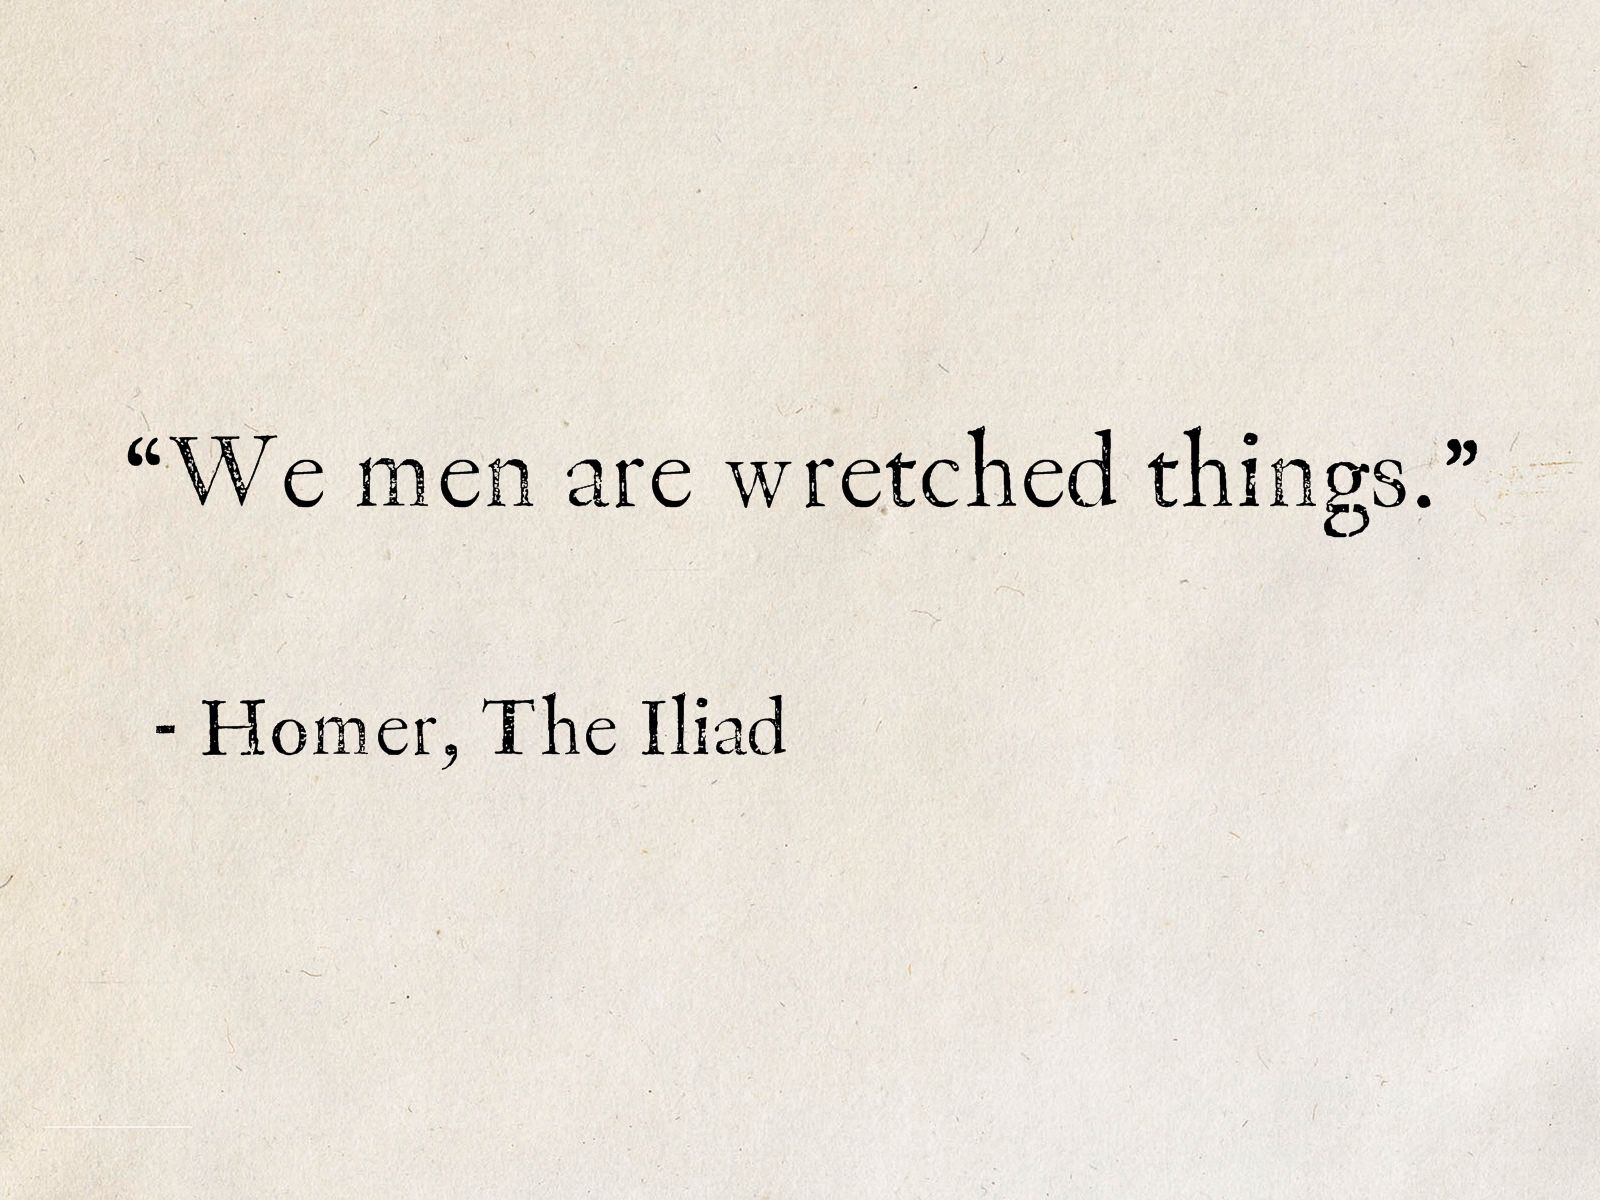 homer the iliad quotes books theiliad homer quotes book